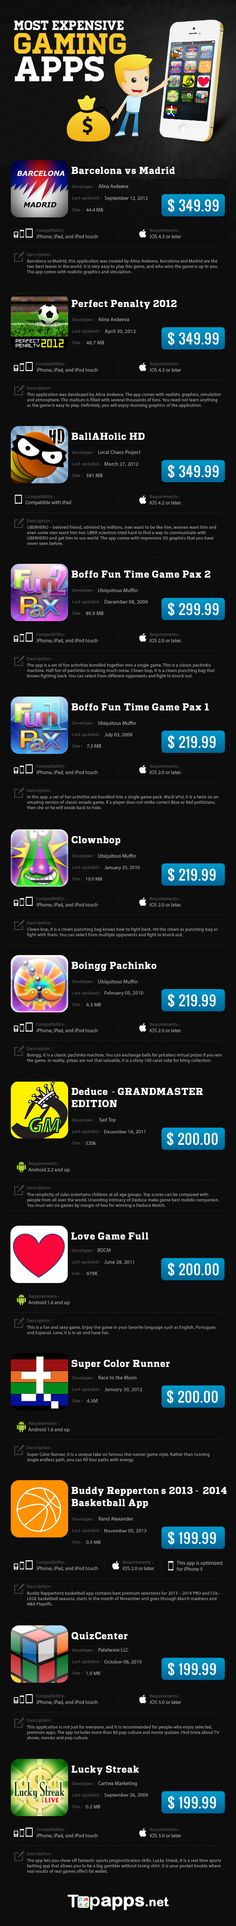 Most Expensive Gaming Apps   #Infographic #Apps #Games